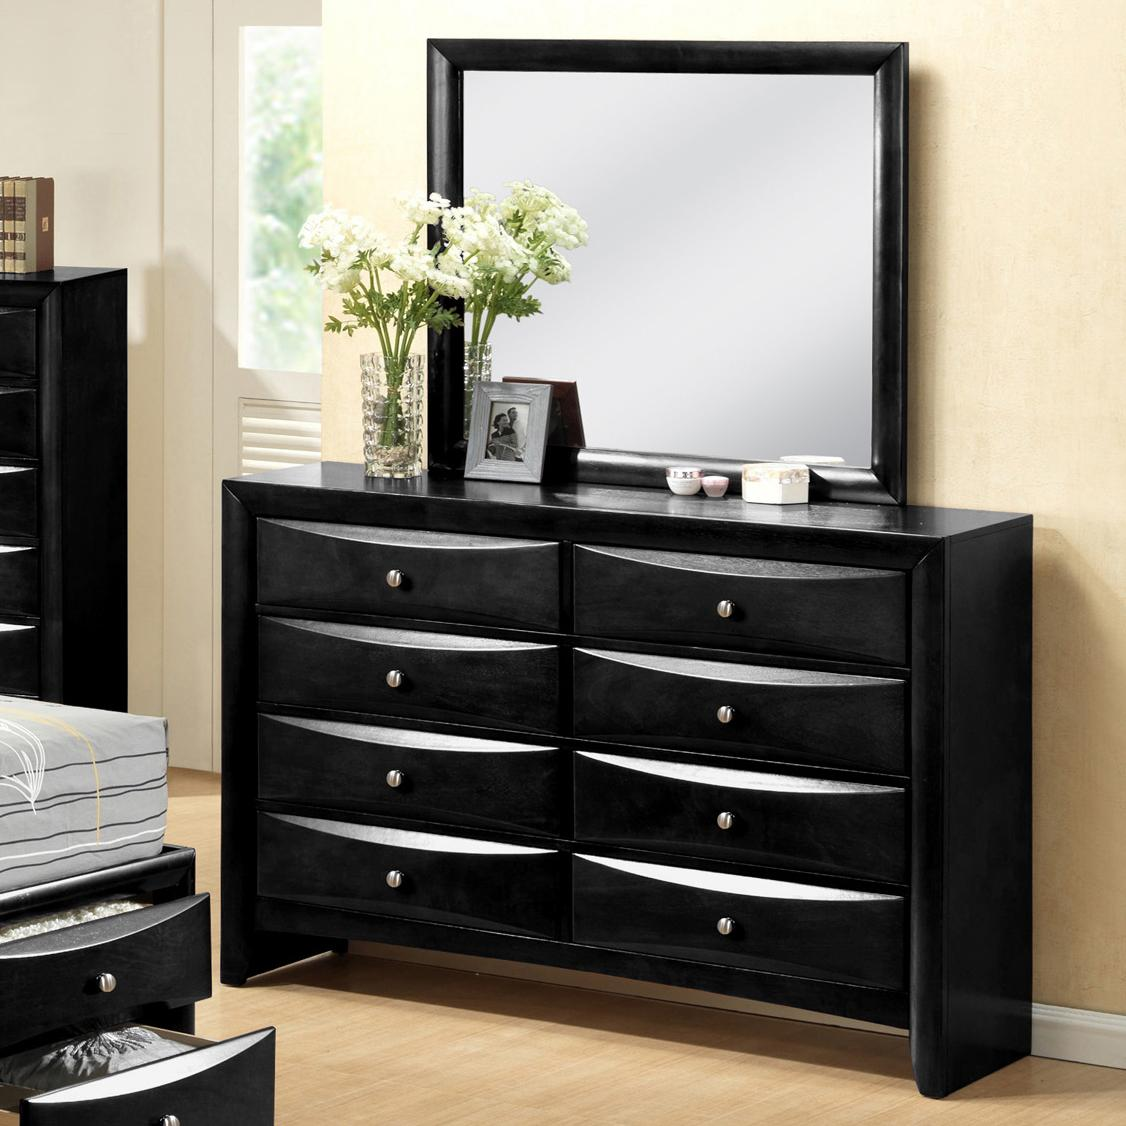 Crown Mark Emily Dresser and Mirror - Item Number: B4280-1+11